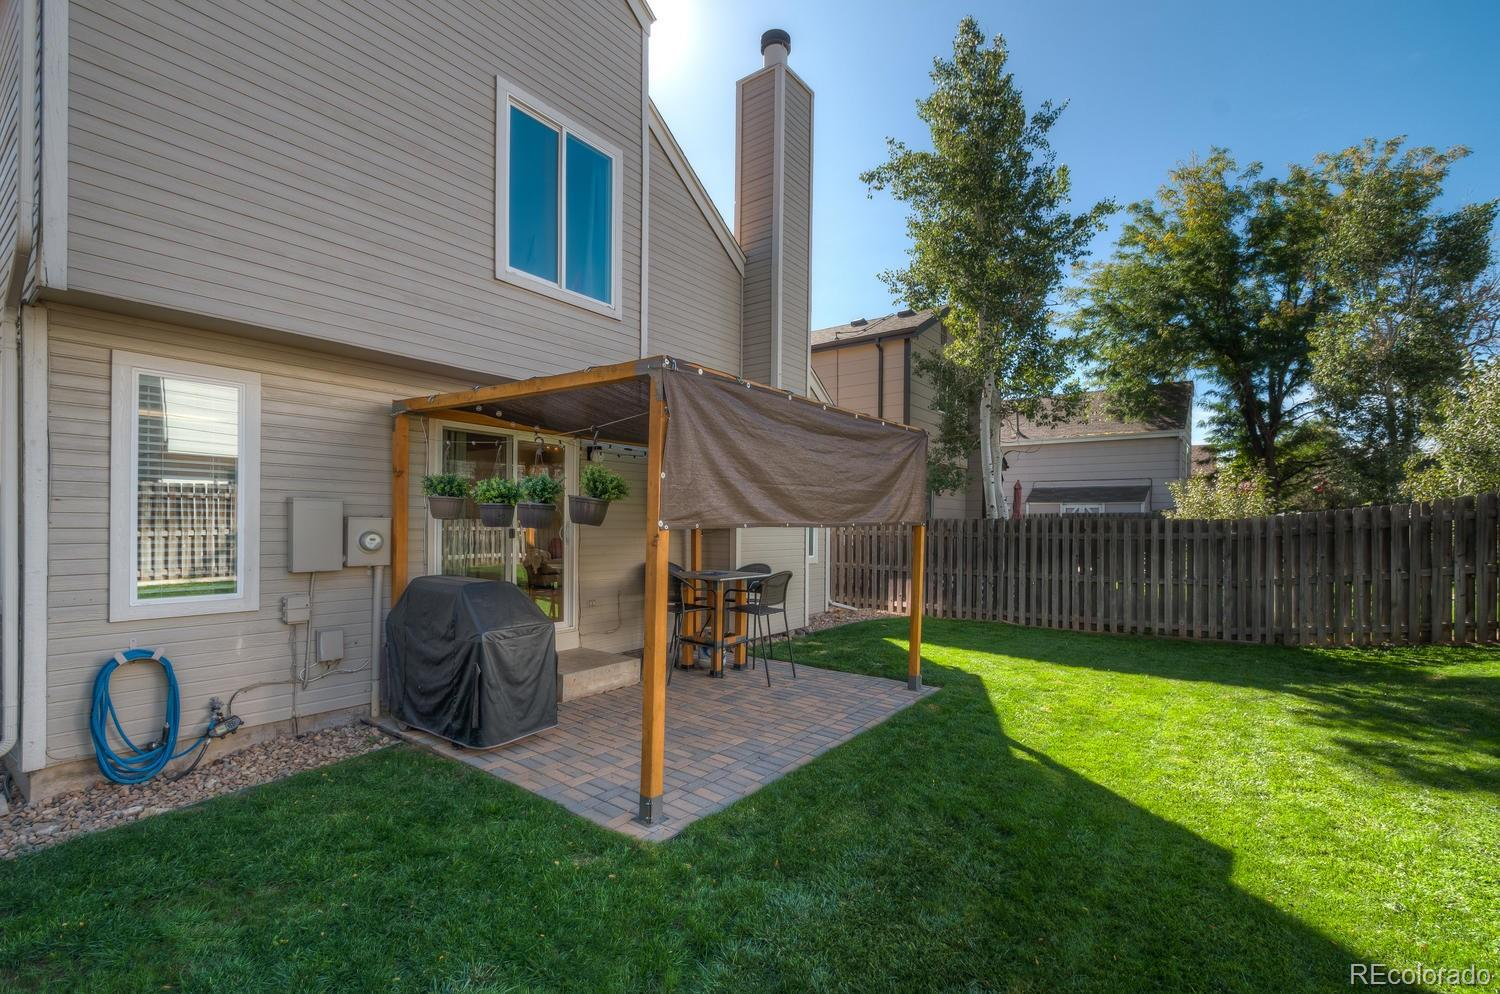 MLS# 2006537 - 27 - 5629 S Youngfield Way, Littleton, CO 80127